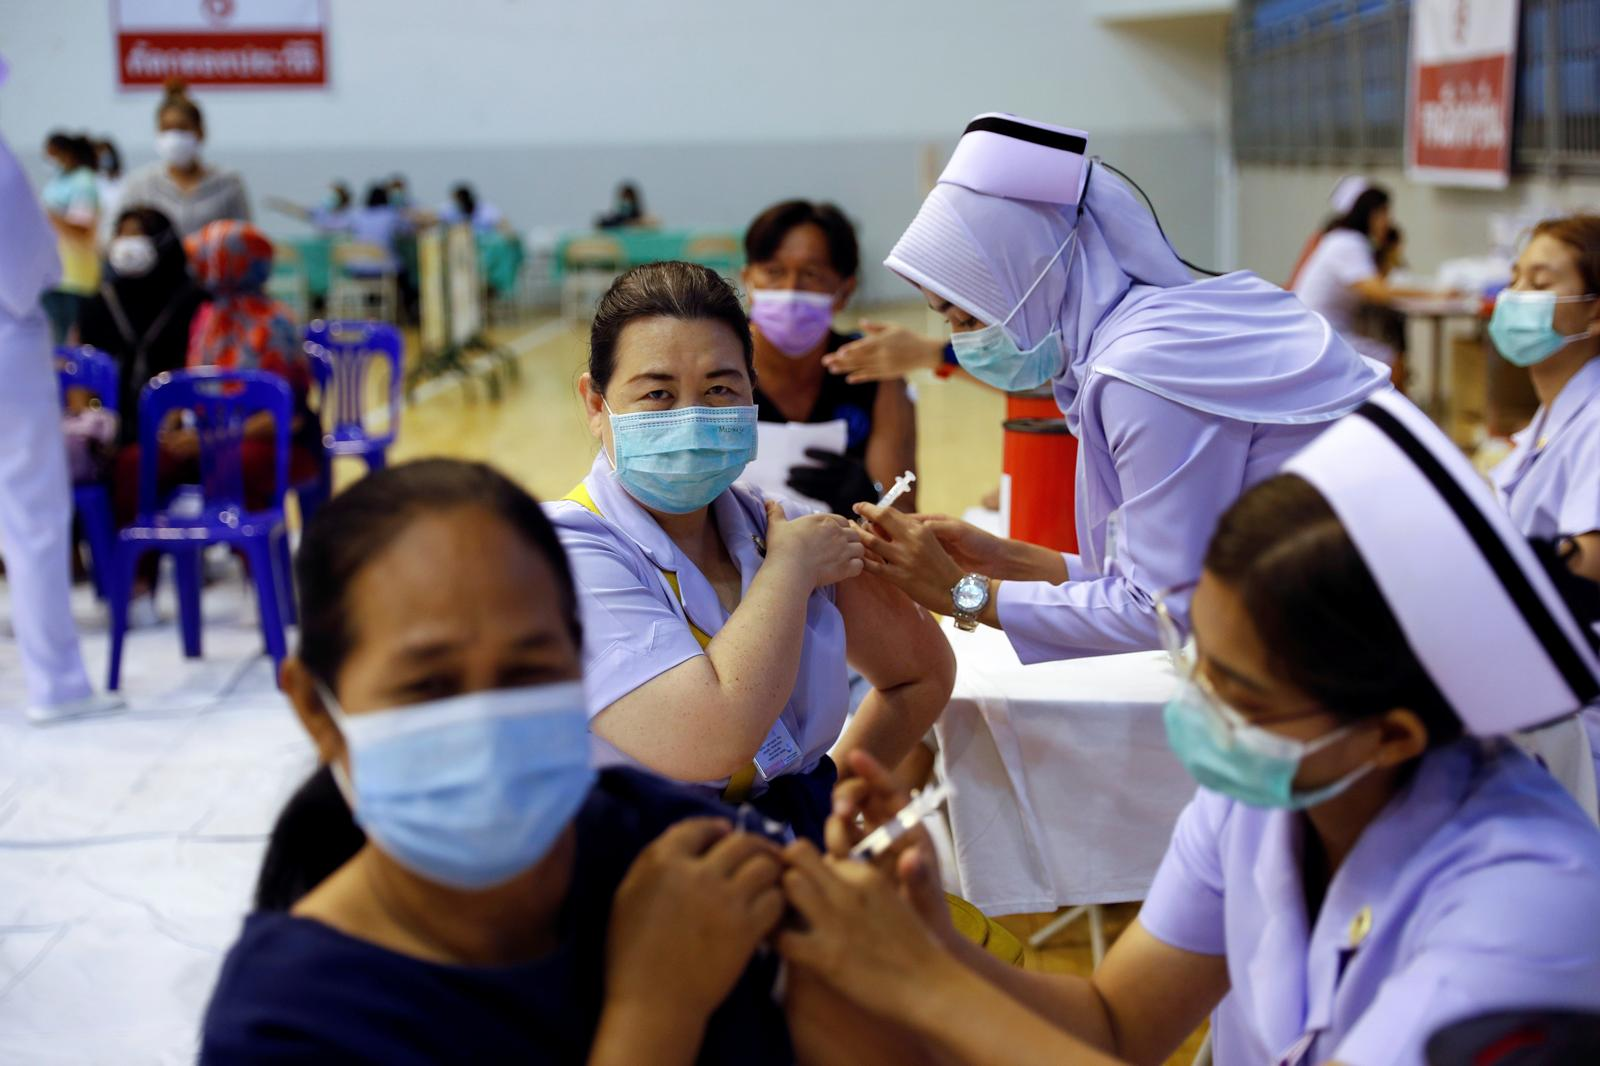 People receive the Sinovac COVID-19 vaccine as the Thai resort island of Phuket rushes to vaccinate its population amid the coronavirus disease (COVID-19) outbreak, and ahead of a July 1 ending of strict quarantine for overseas visitors, to bring back tourism revenue in Phuket, Thailand, April 1, 2021.  Photo: Reuters